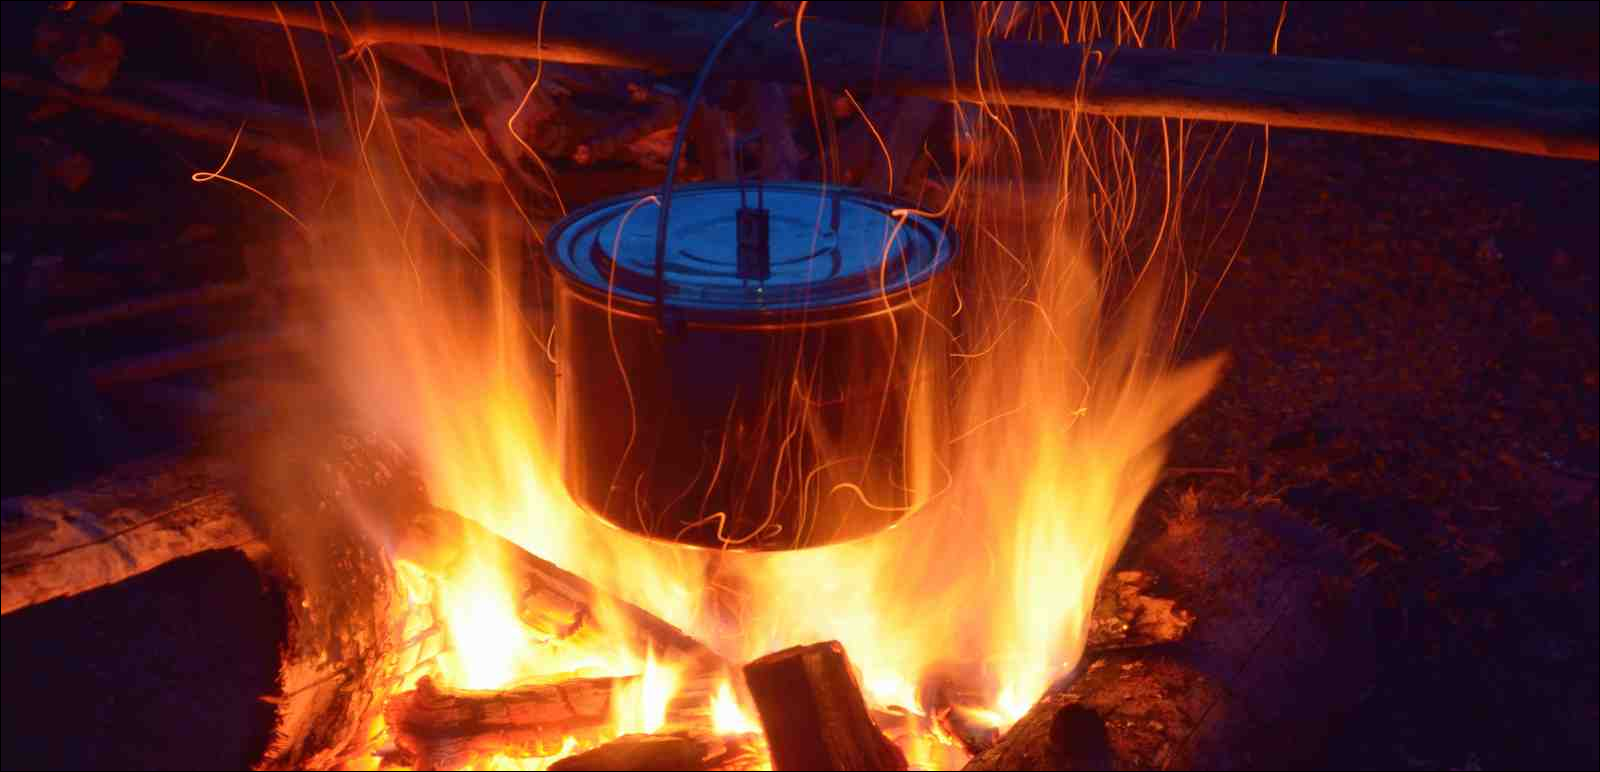 kettle over camp fire in the evening